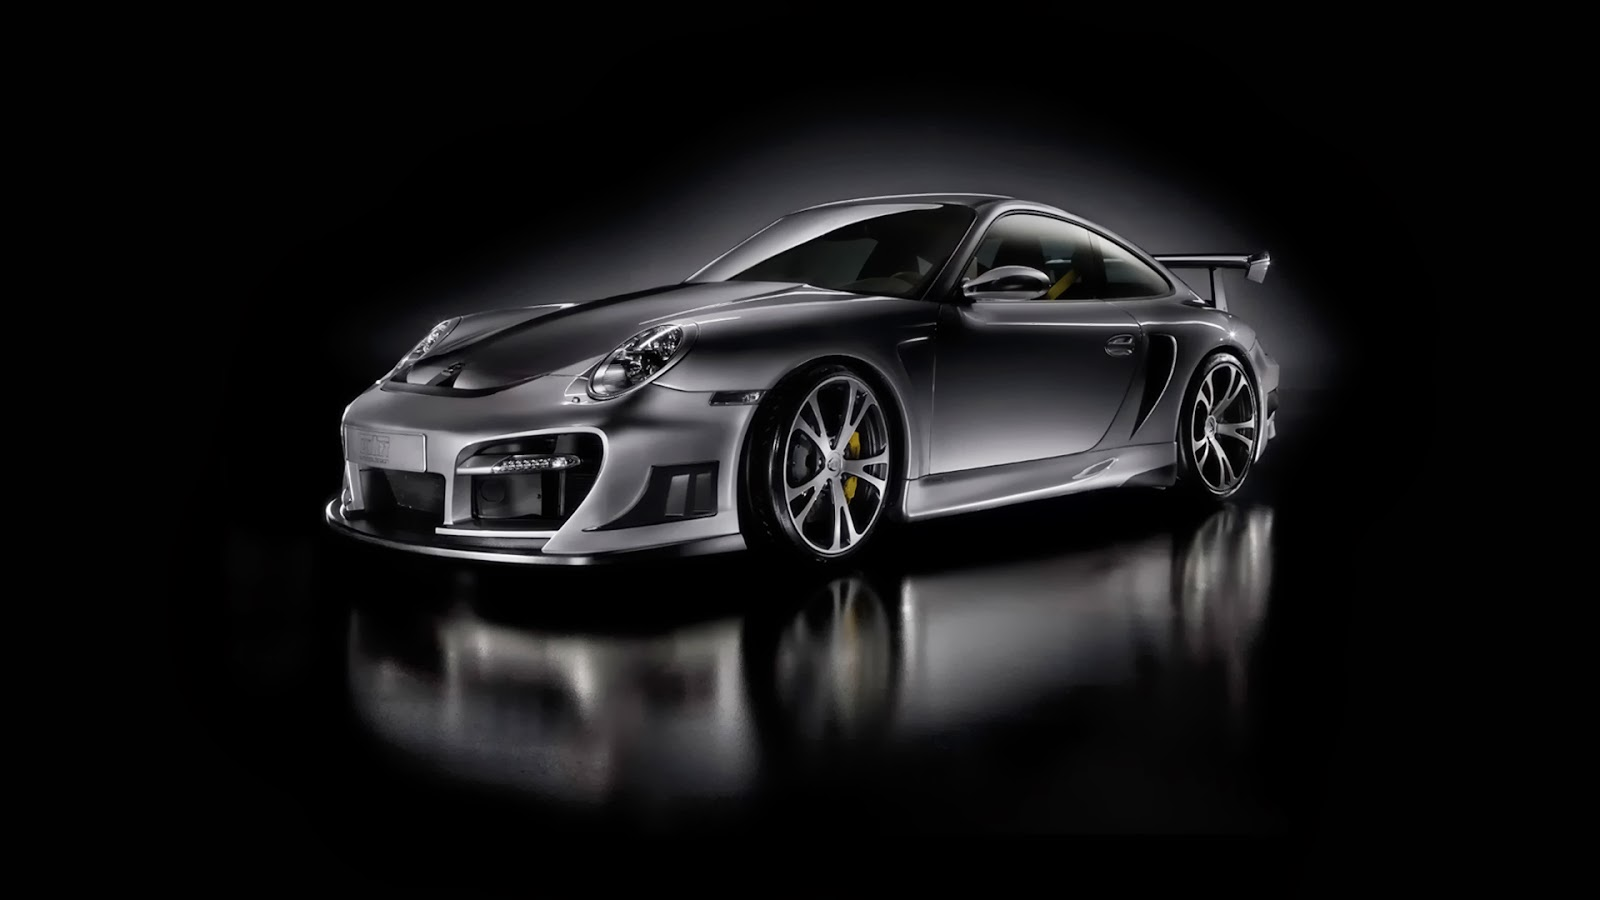 HD Car wallpapers 1080p | Nice Pics Gallery